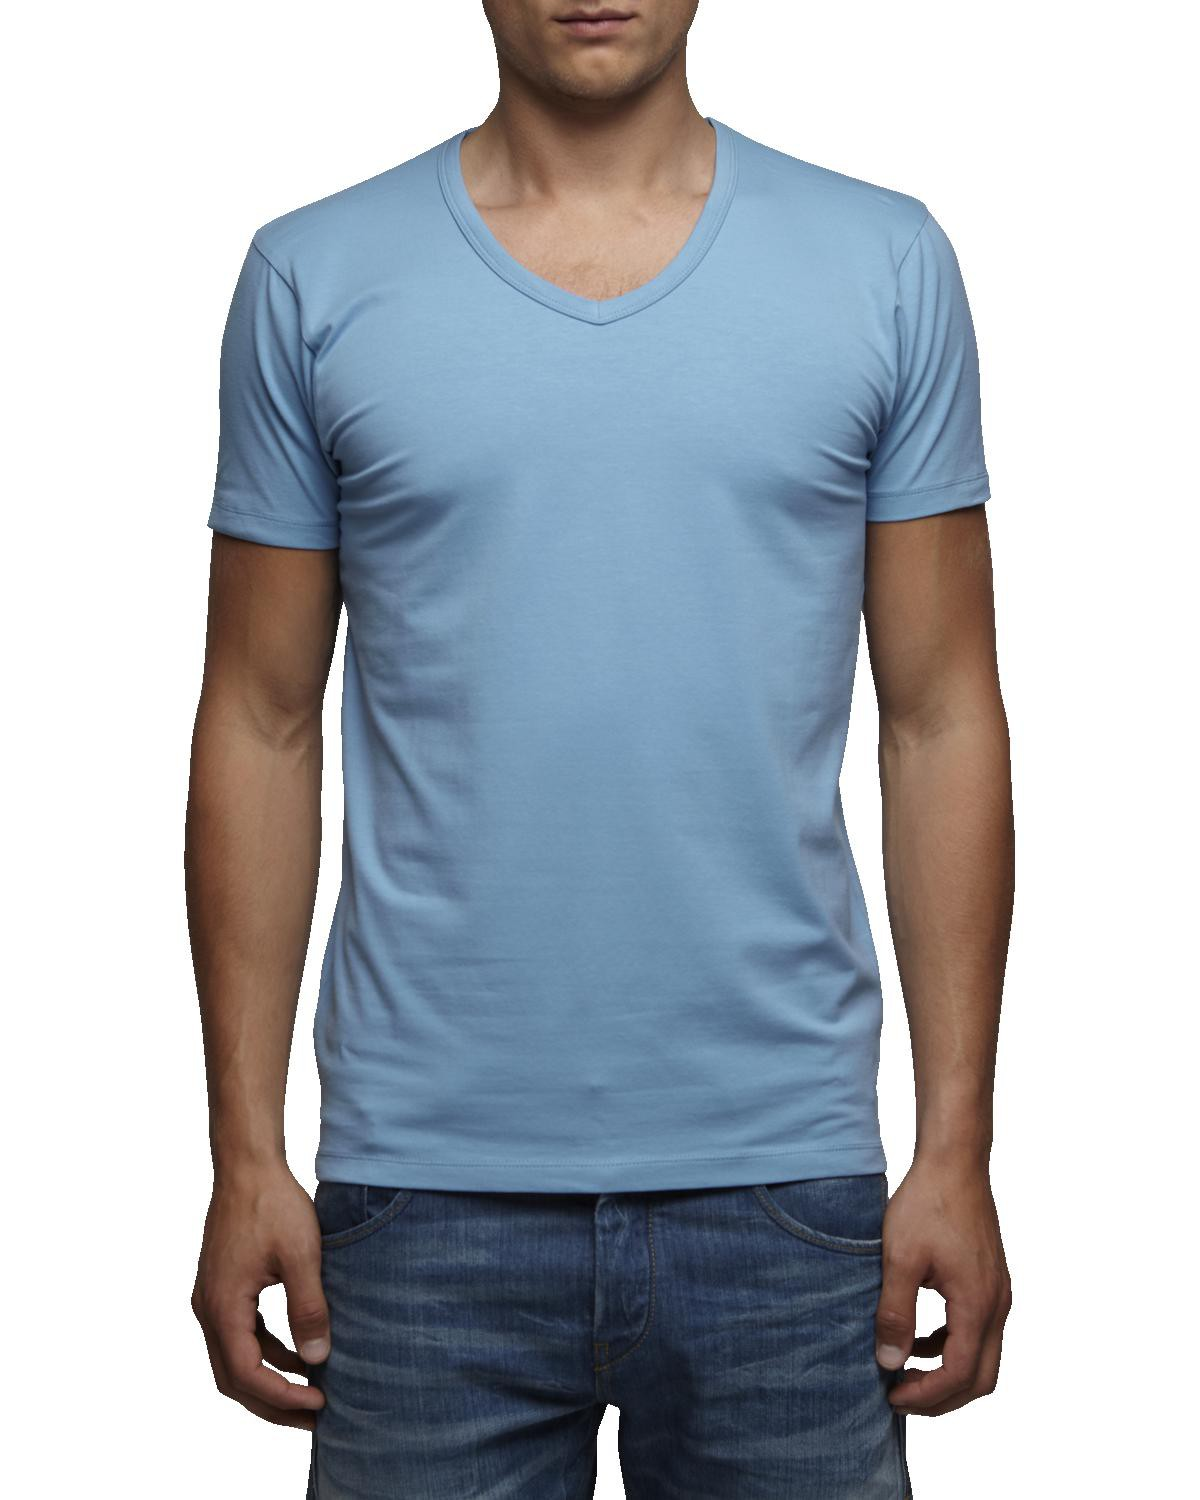 Jack-Jones-T-Shirt-Basic-V-Neck-Slim-Fit-S-XXL-Weiss-Schwarz-Grau-Blau-Gruen